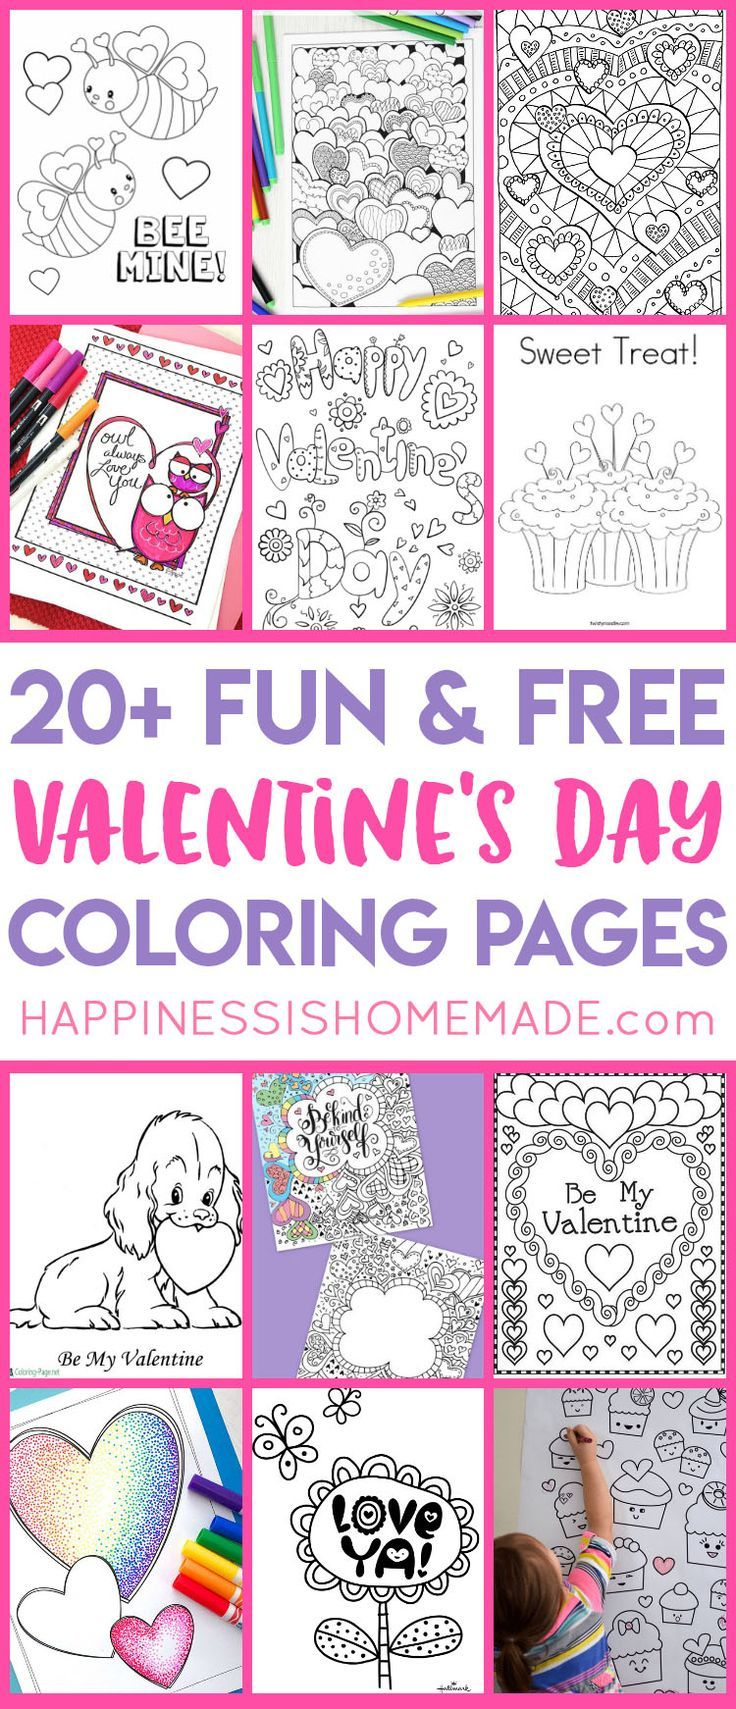 Free Printable Valentines Coloring Pages - Looking for free ...